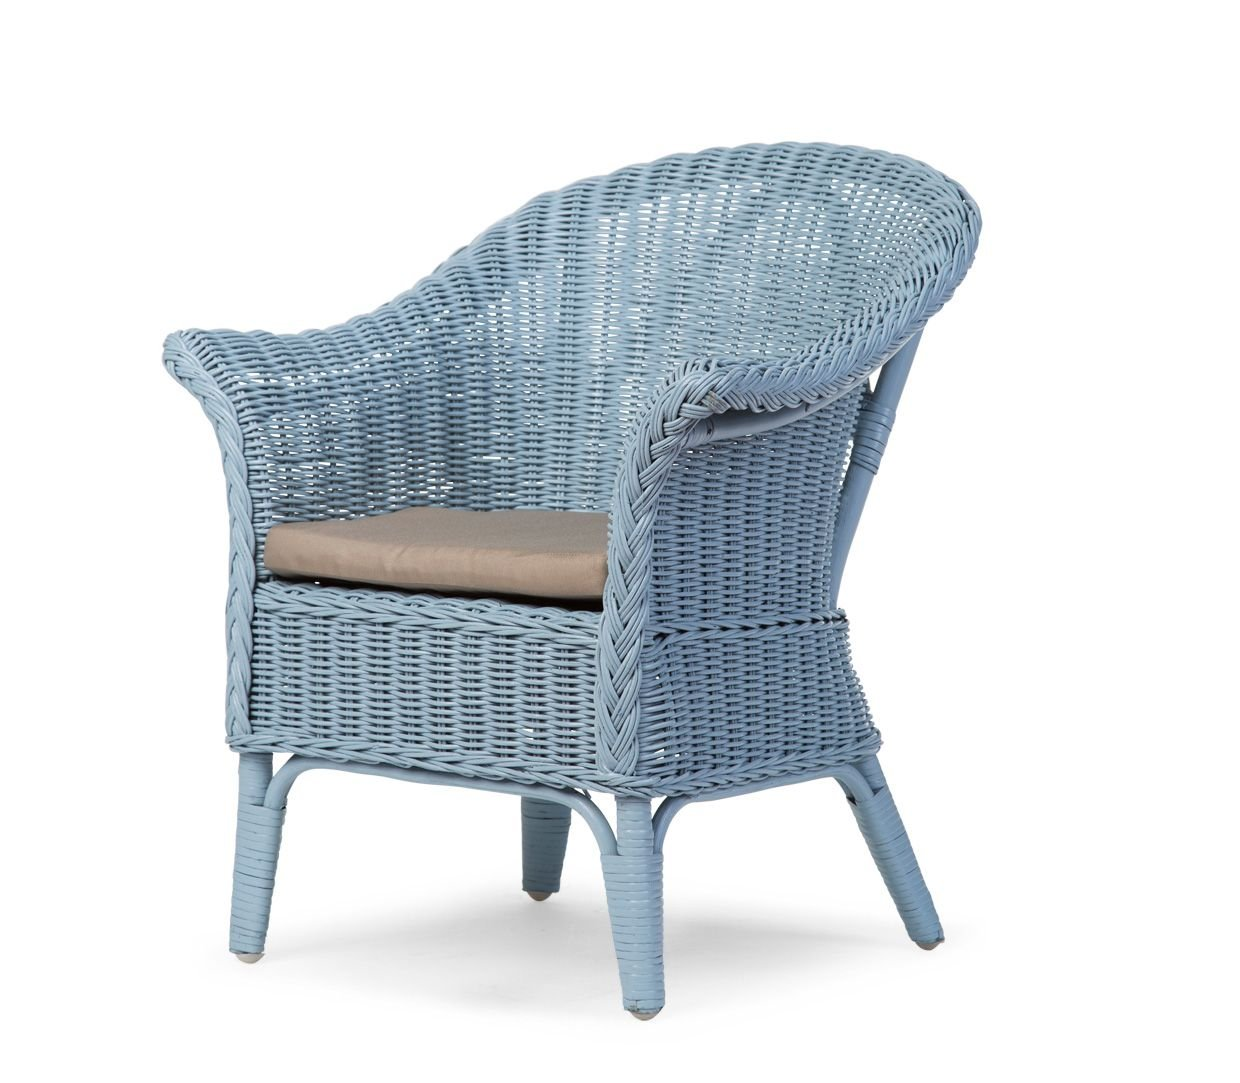 Childhome wicker chair mimo blau buy at kidsroom for Large wicker moon chair